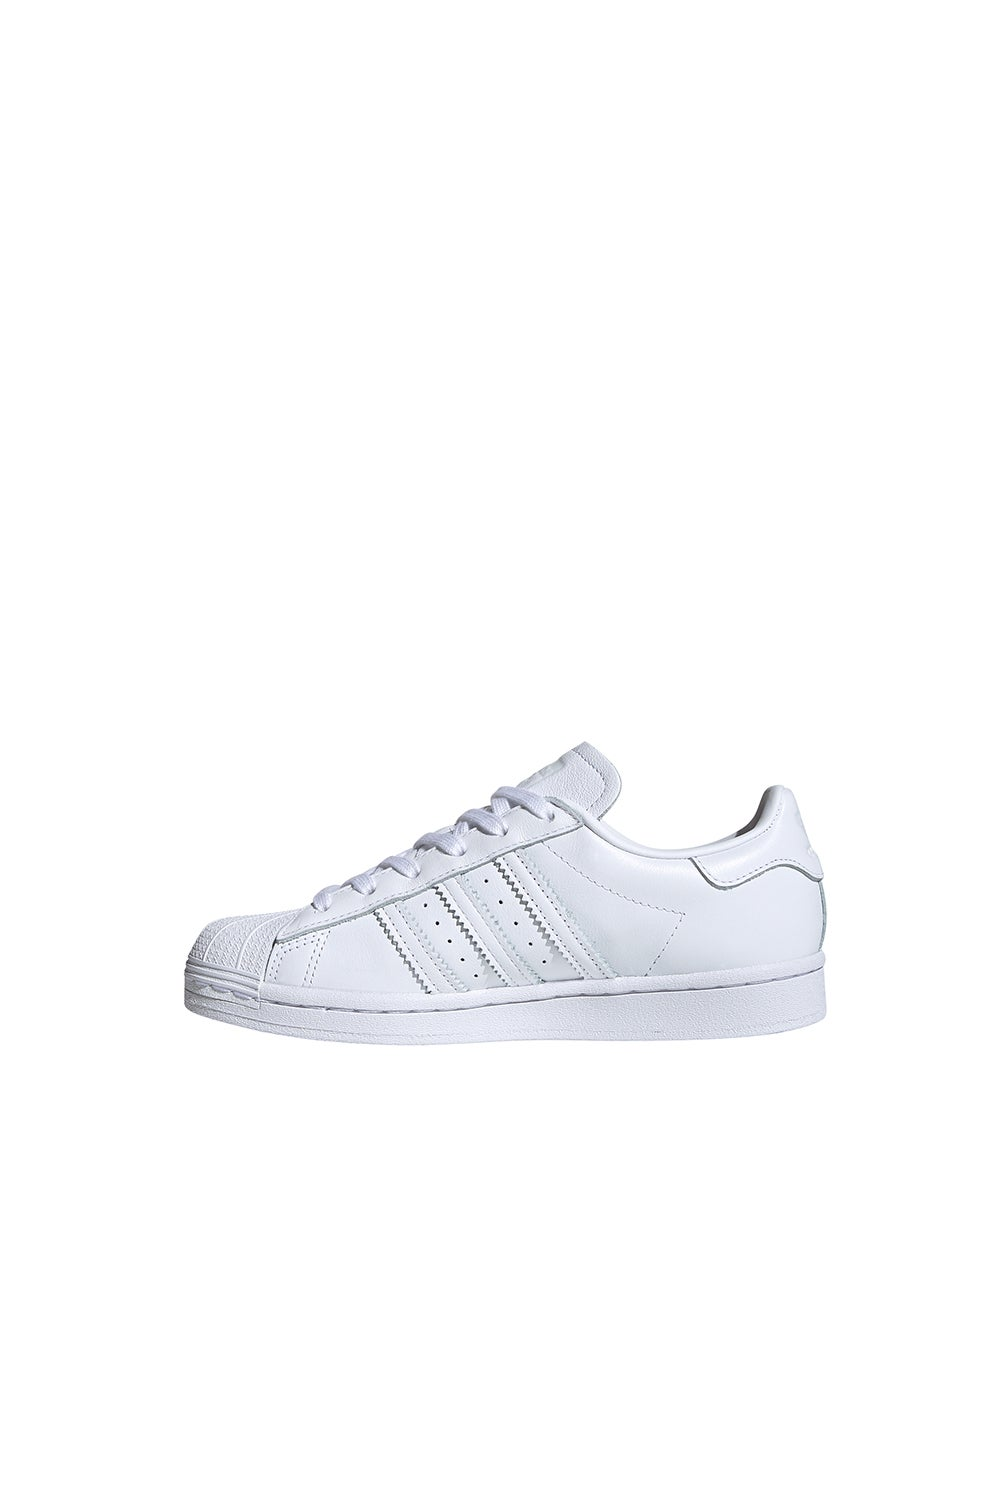 adidas Superstar FTWR White/Core Black/Scarlet